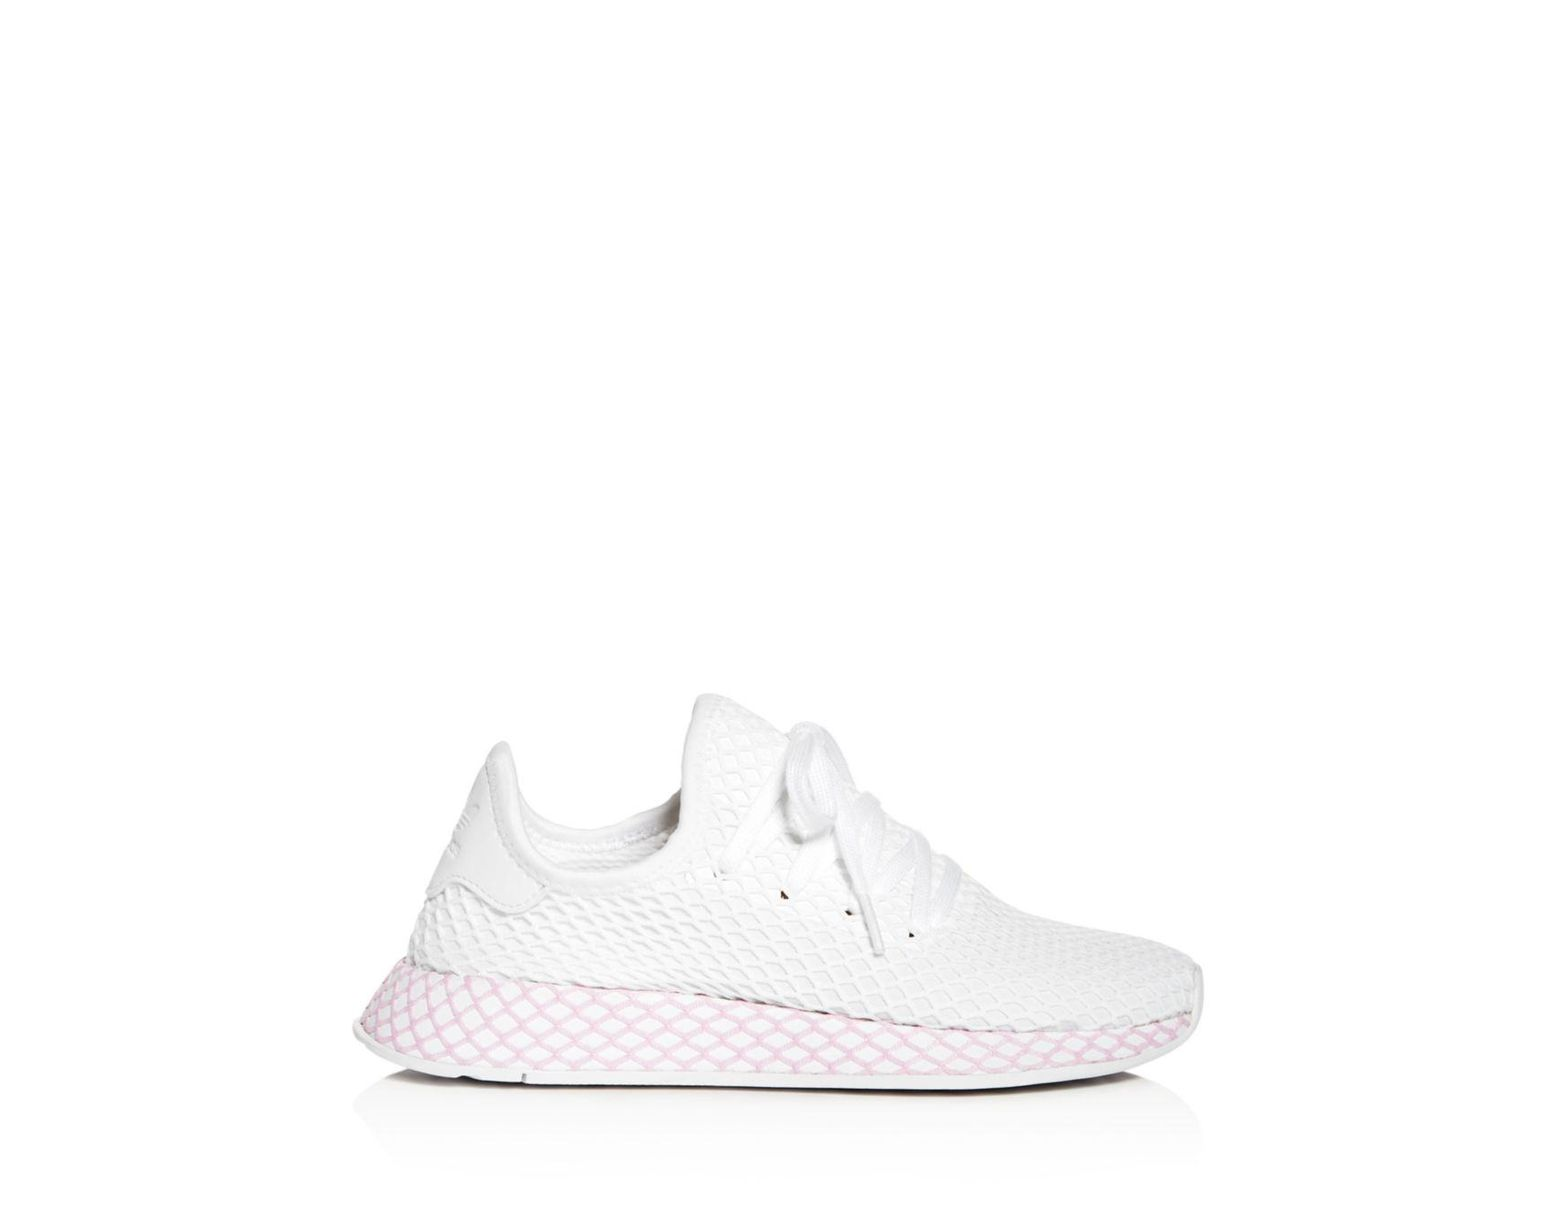 bfbc8875b89ed Lyst - adidas Women s Deerupt Net Lace Up Sneakers in White